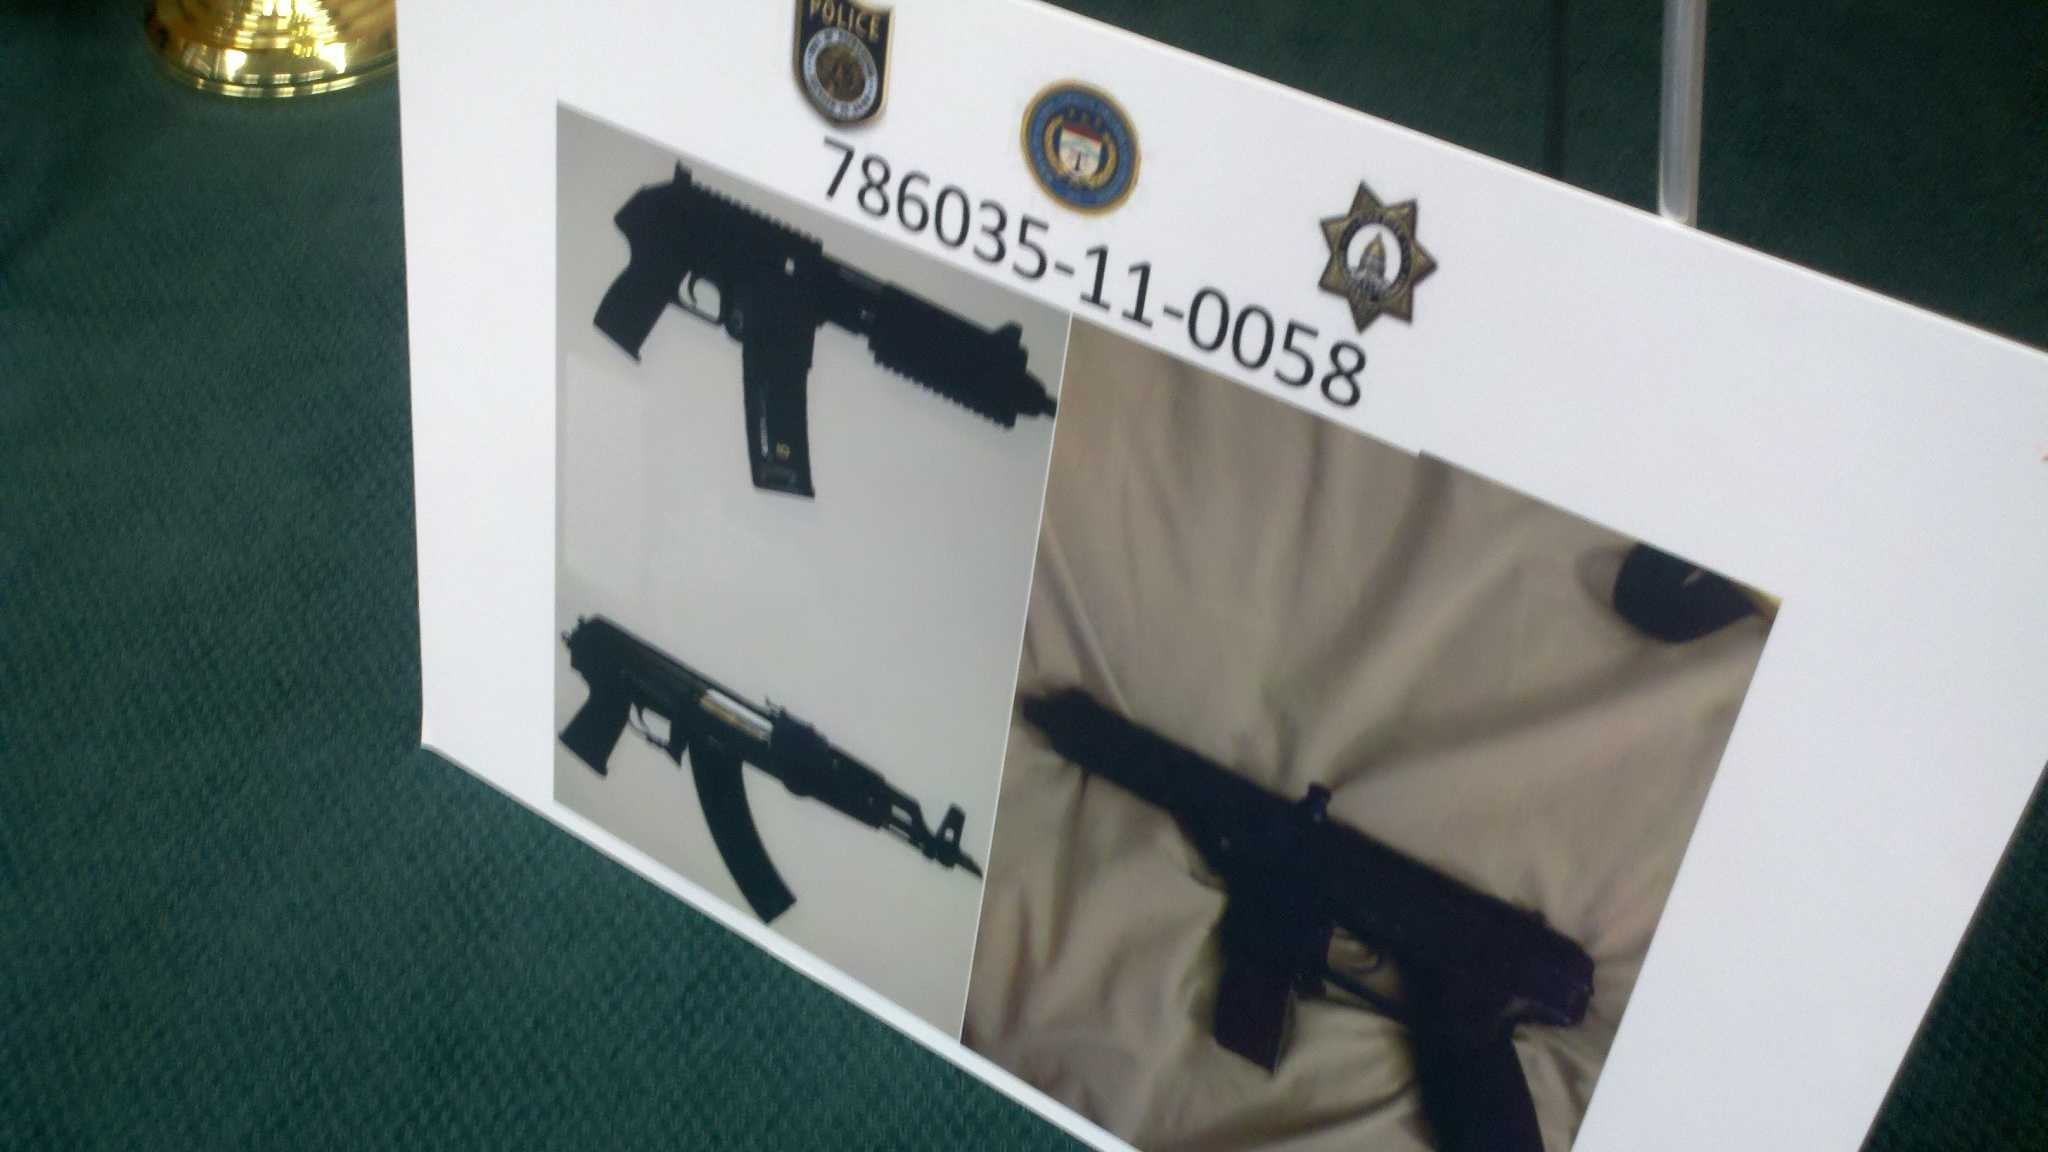 Sacramento County Sheriff Scott Jones called the incident an abuse of authority.